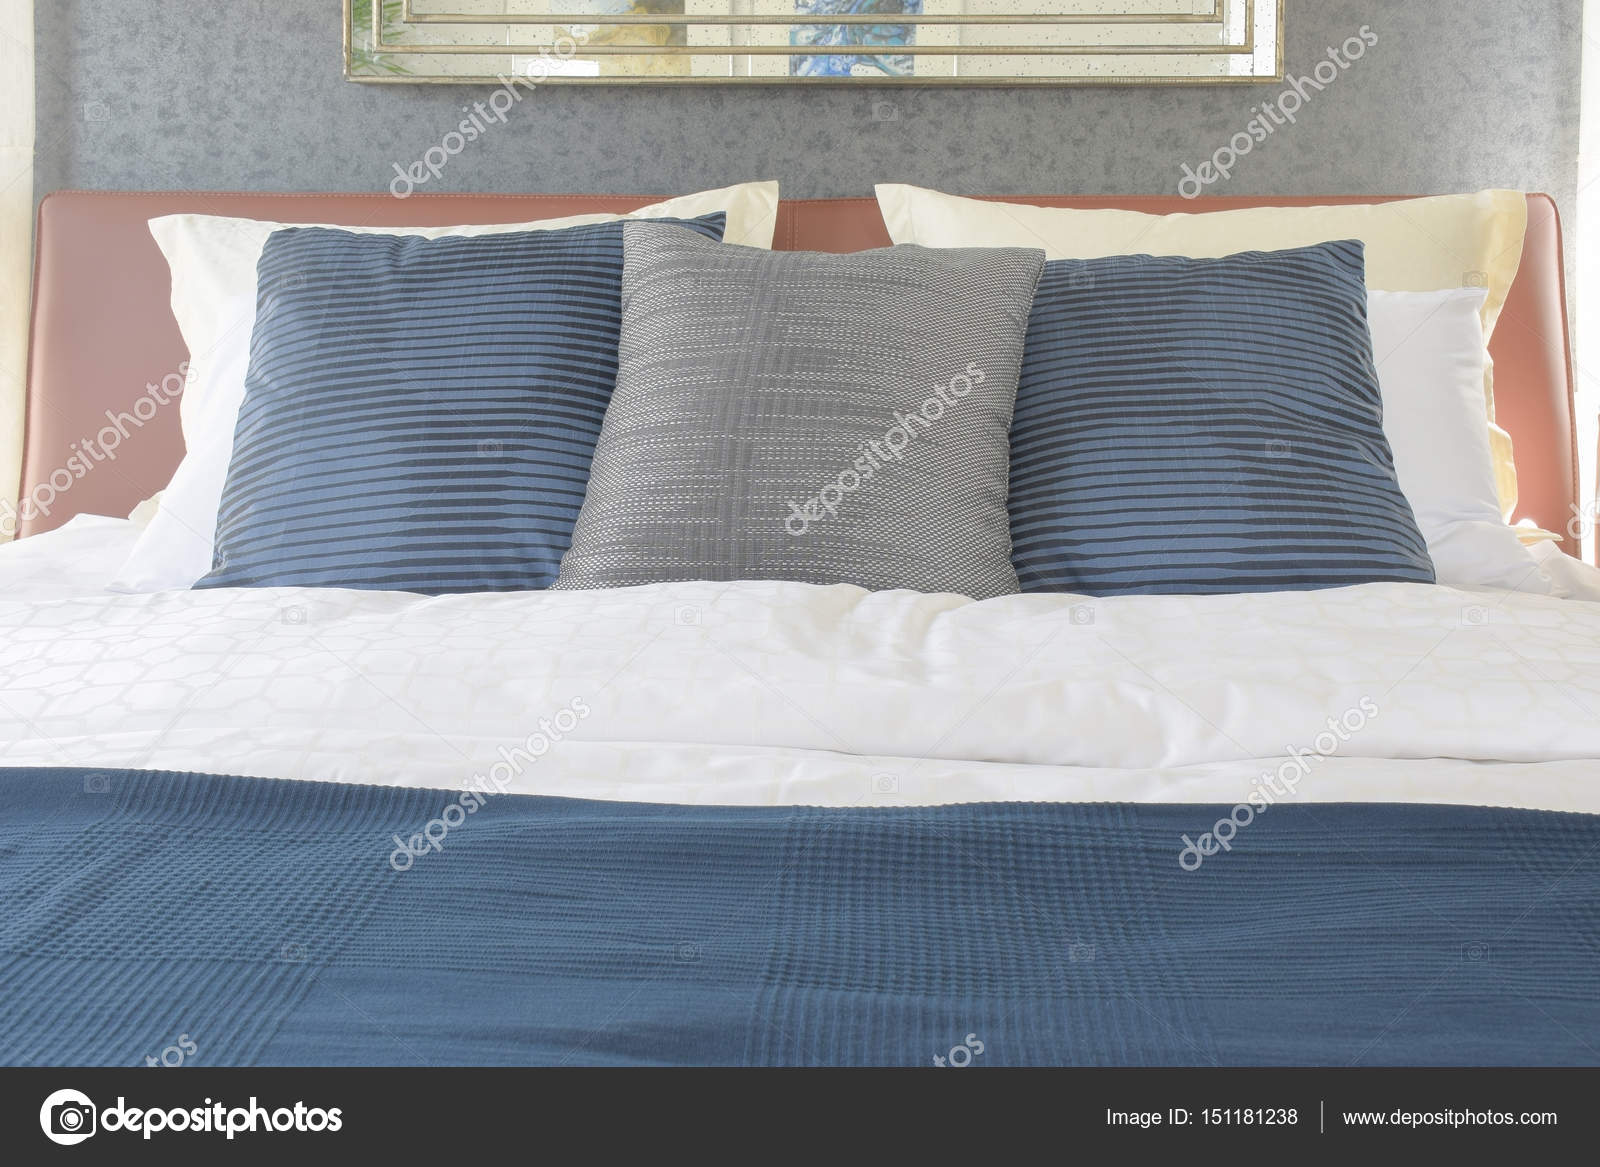 Dark Blue And Gray Pillow On Bed With Brown Leather Headboard Stock Photo C Worldwide Stock 151181238